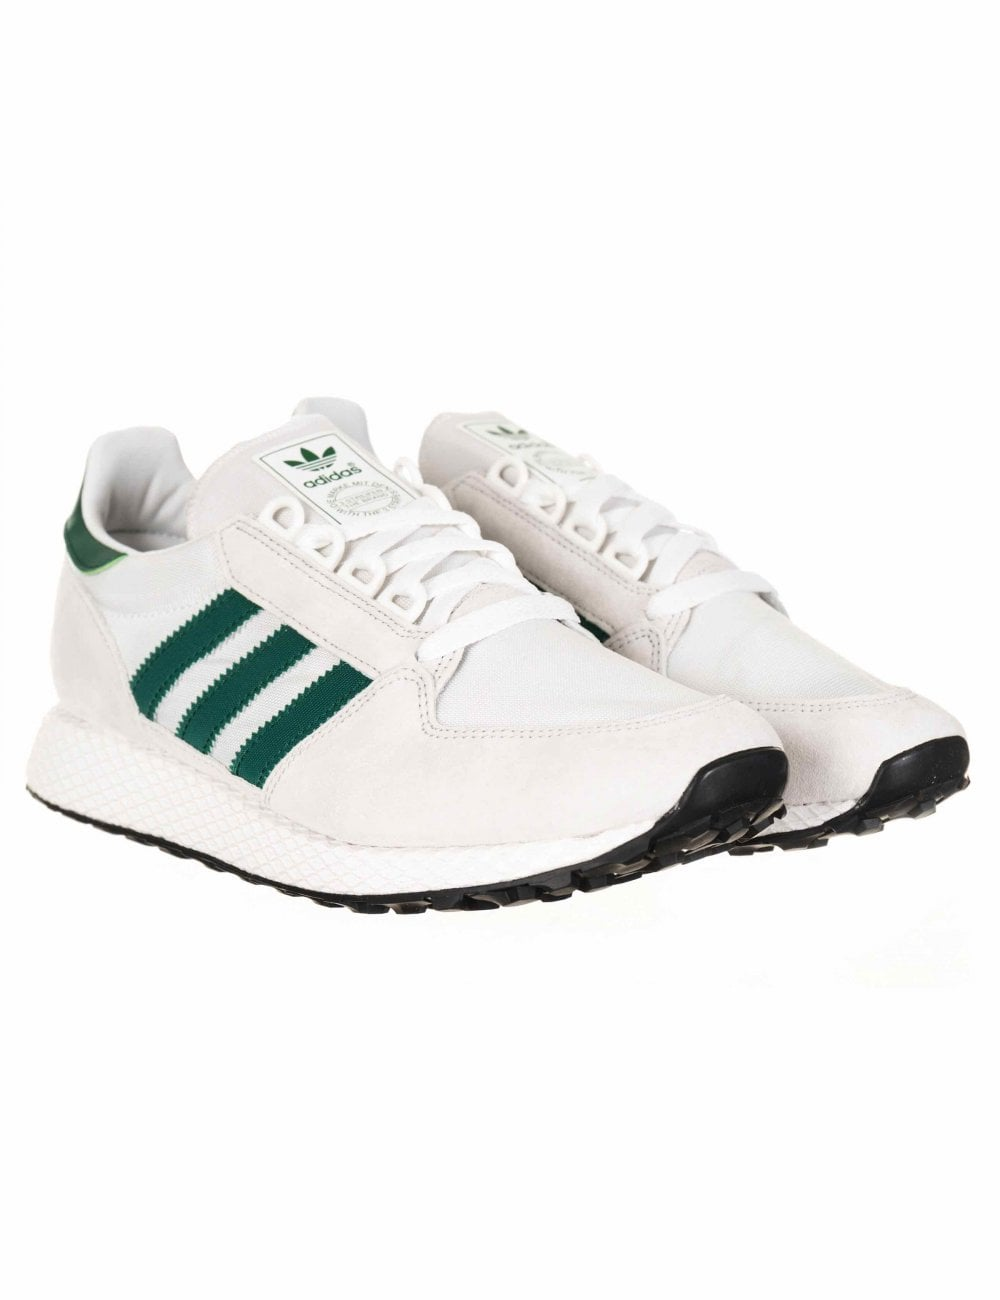 Adidas Originals Forest Grove Trainers - Crystal White Collegiate Green -  Footwear from Fat Buddha Store UK c912413dd